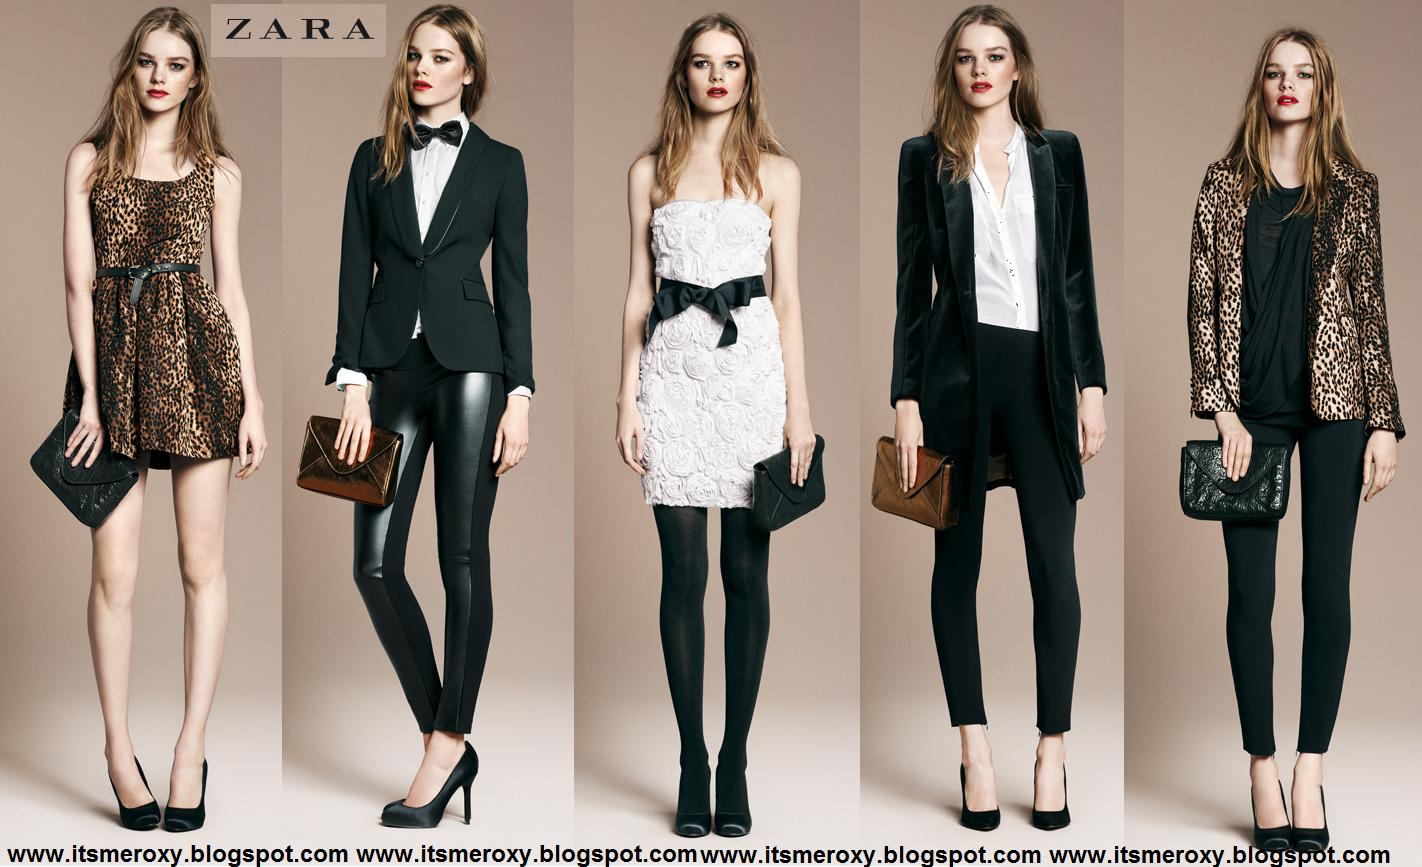 Zara for High fashion meaning